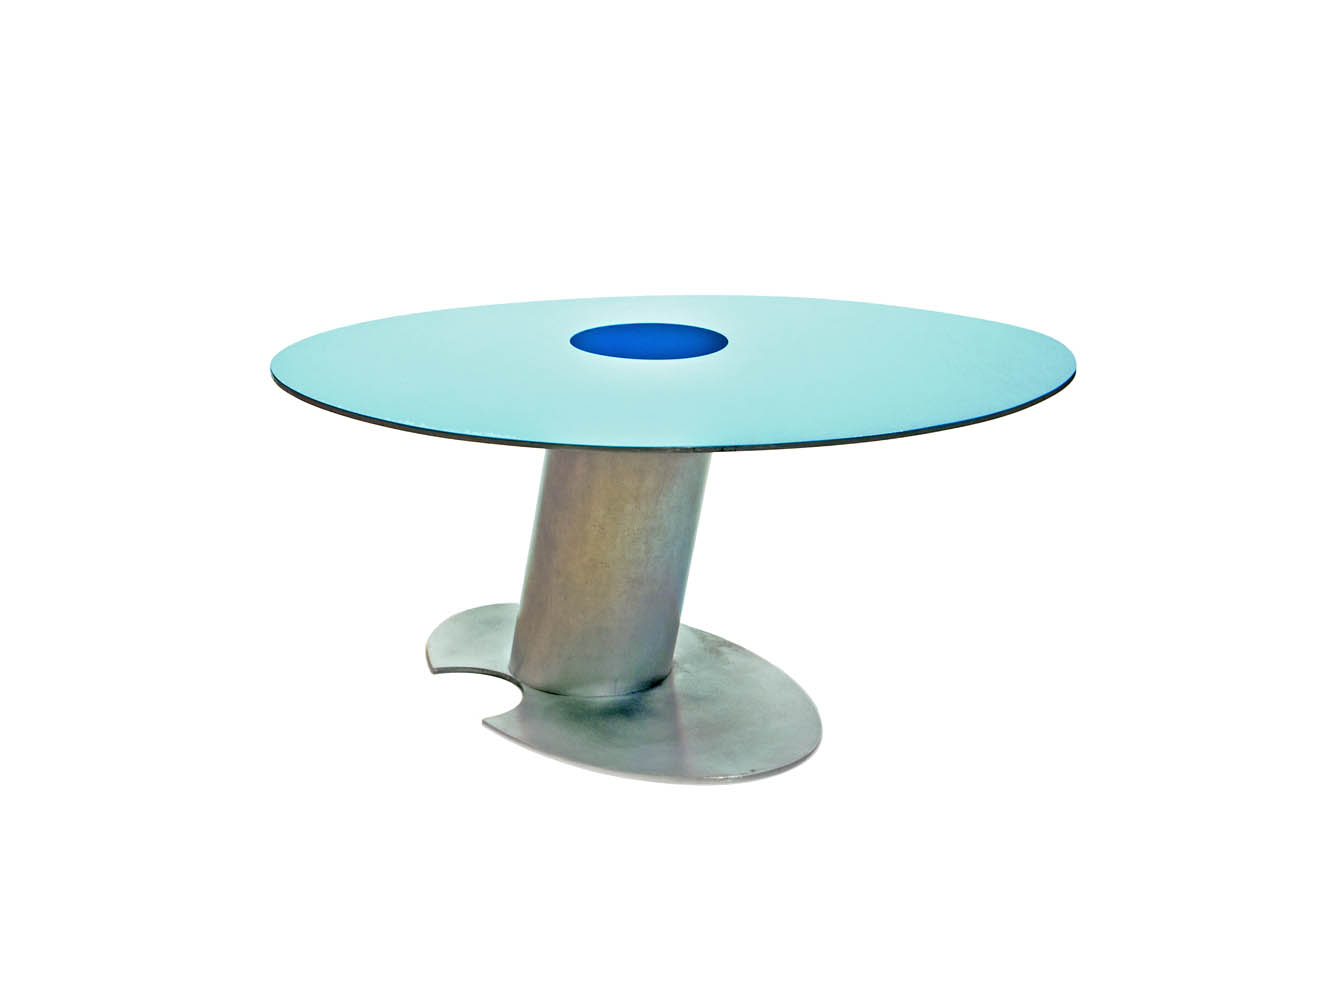 JoelShapiro-Table.jpg